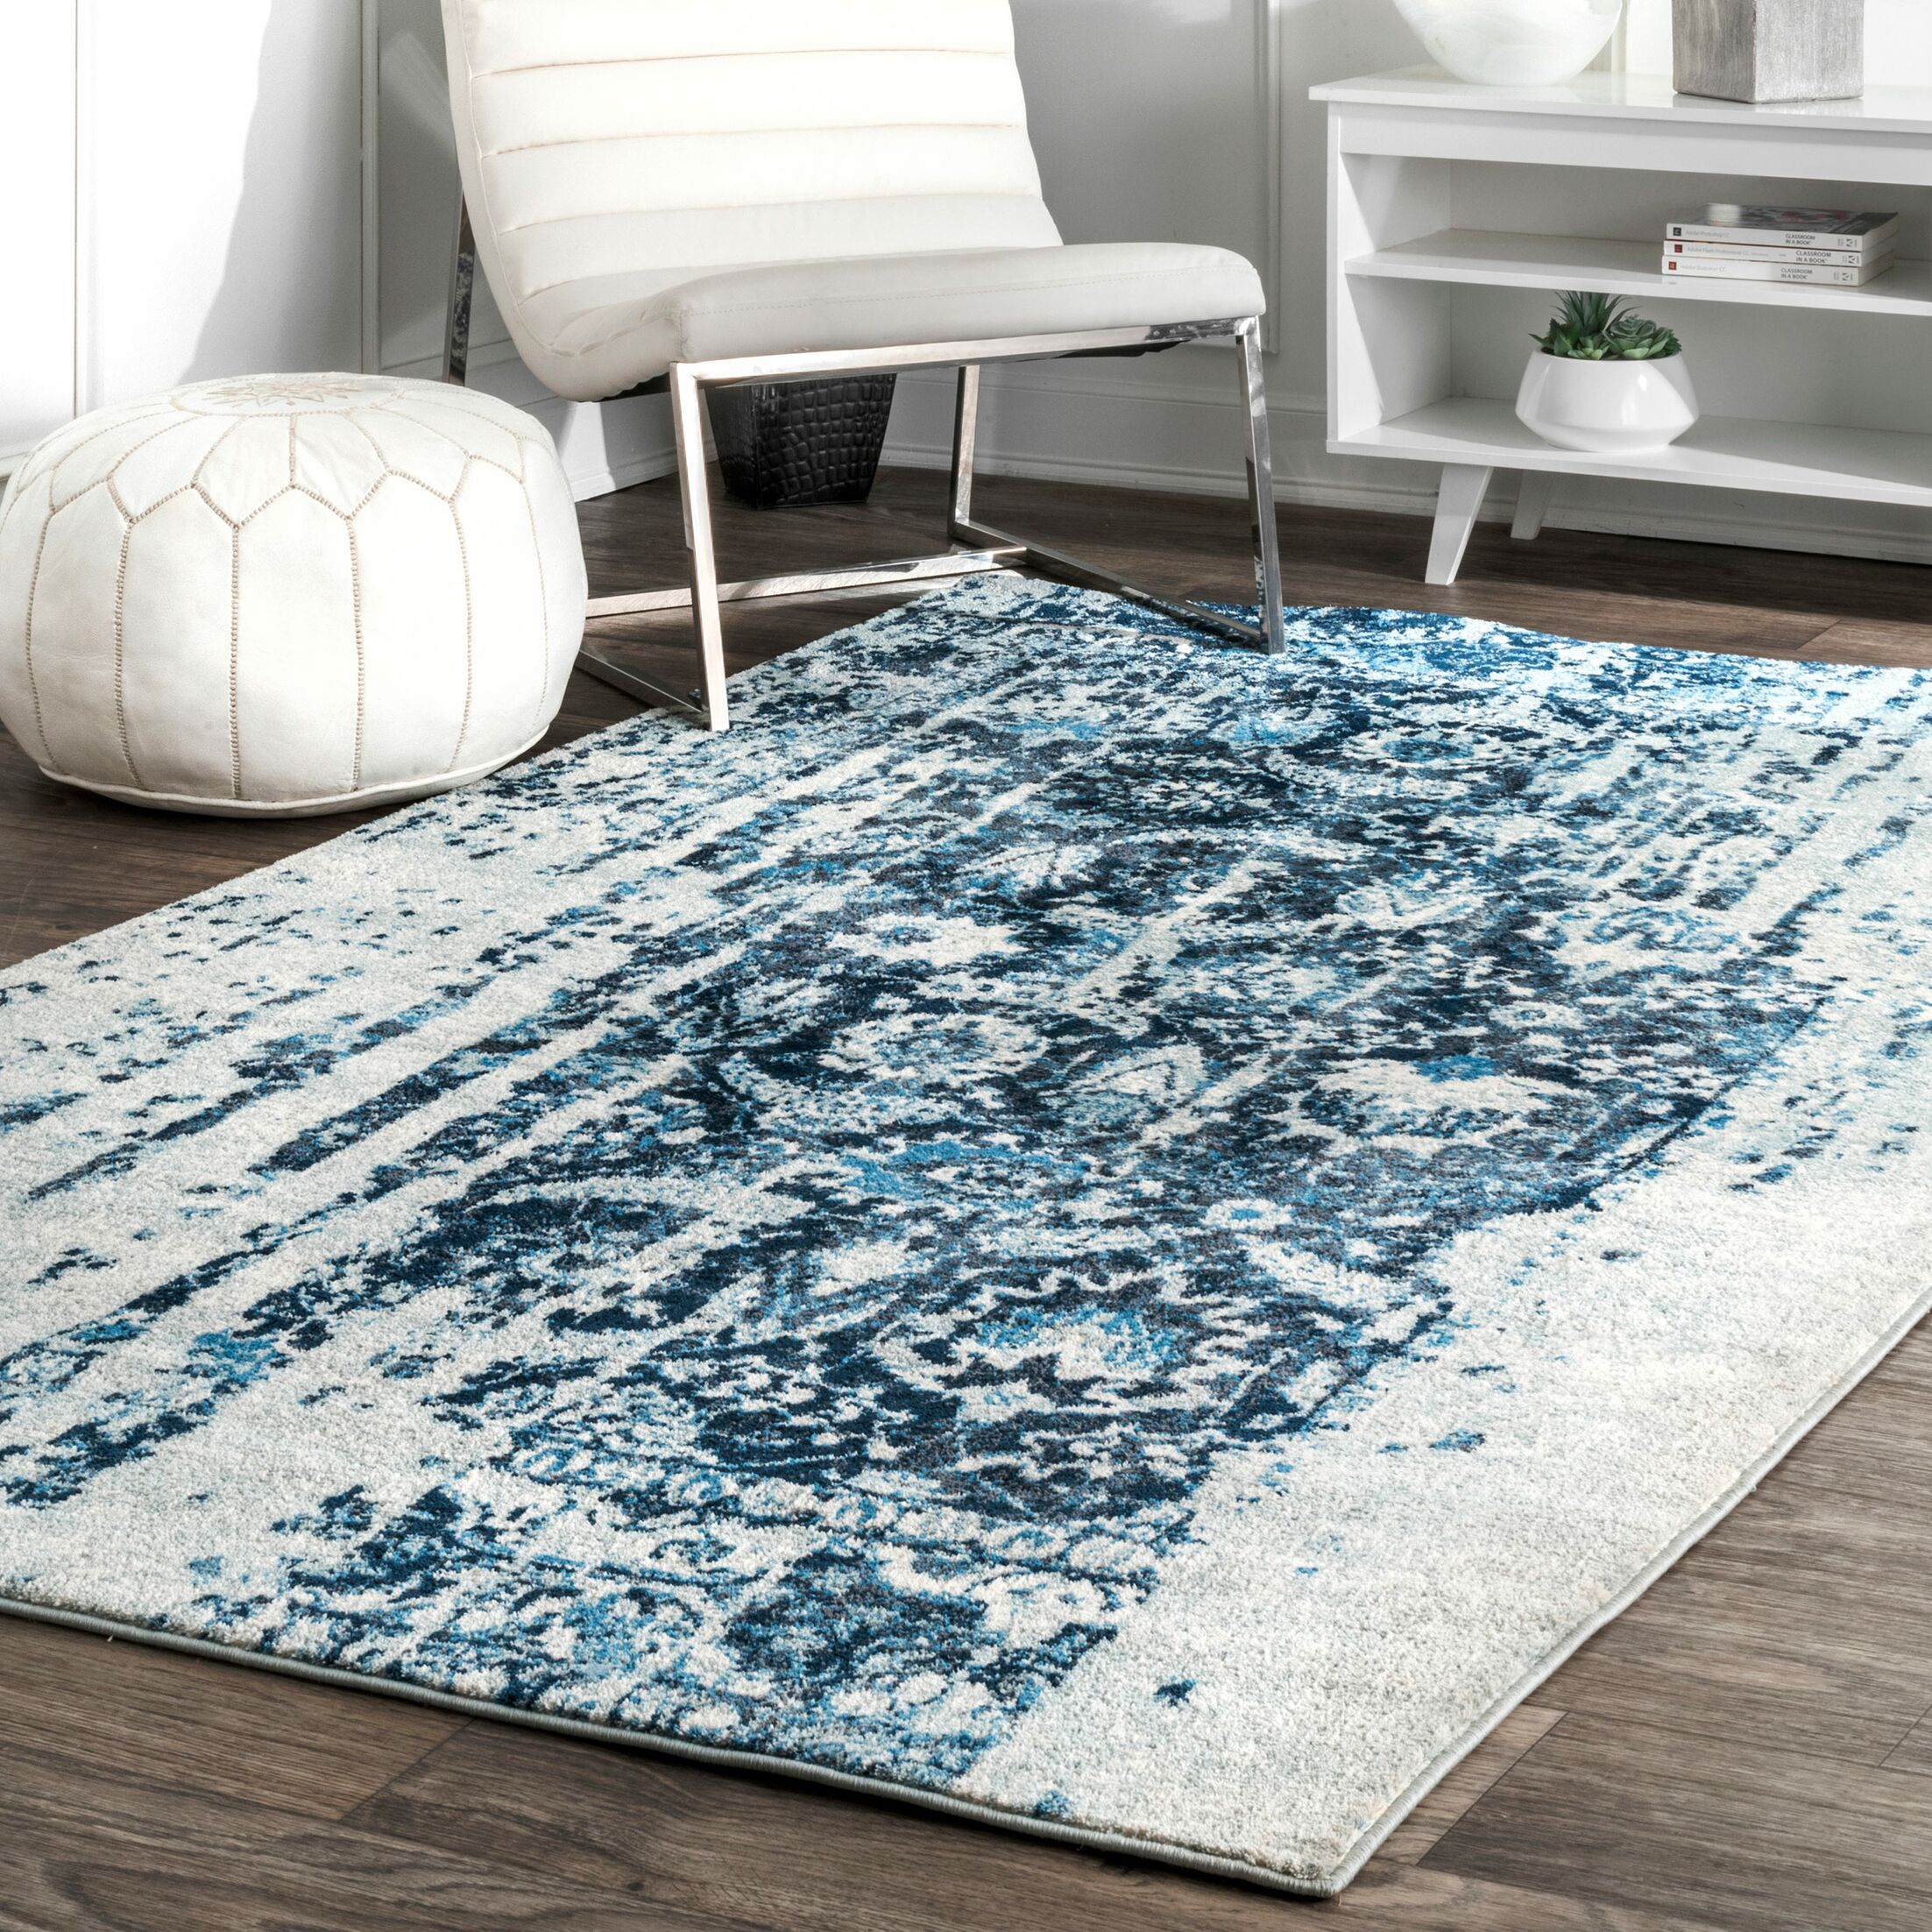 Montagne Blue/White Area Rug Rug Size: Rectangle 5' x 8'